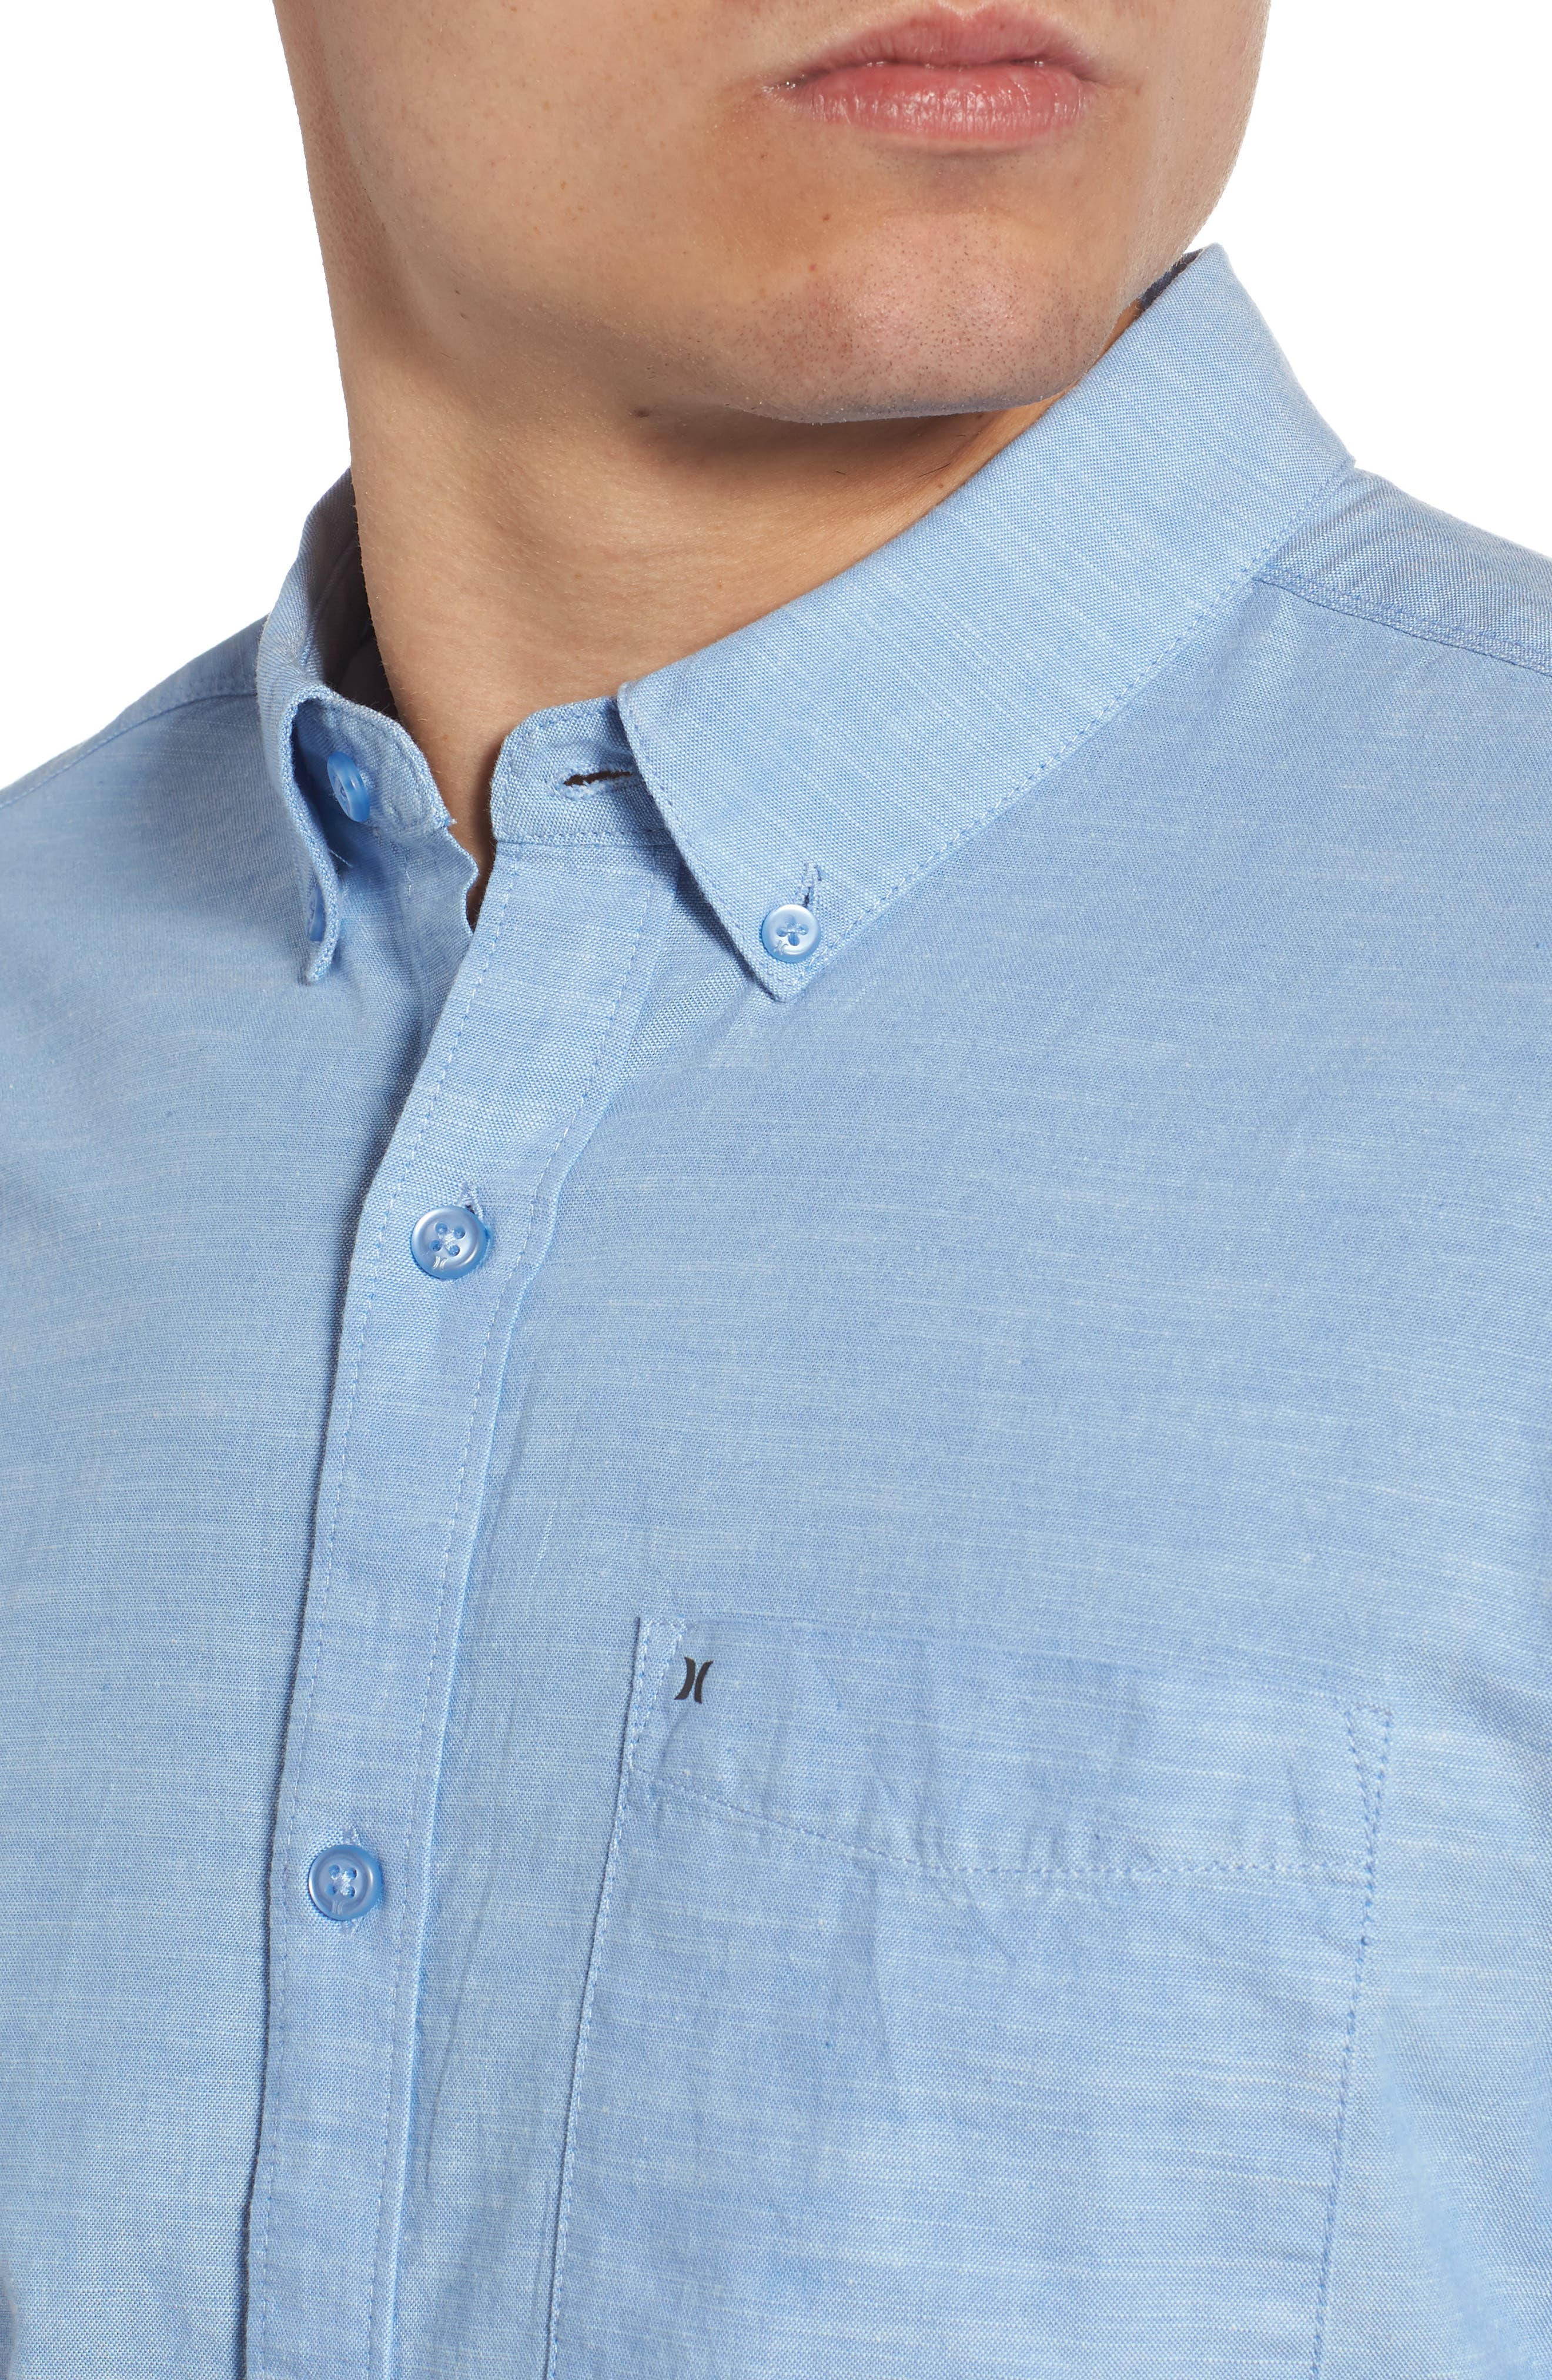 One & Only 2.0 Woven Shirt,                             Alternate thumbnail 4, color,                             BLUE OX